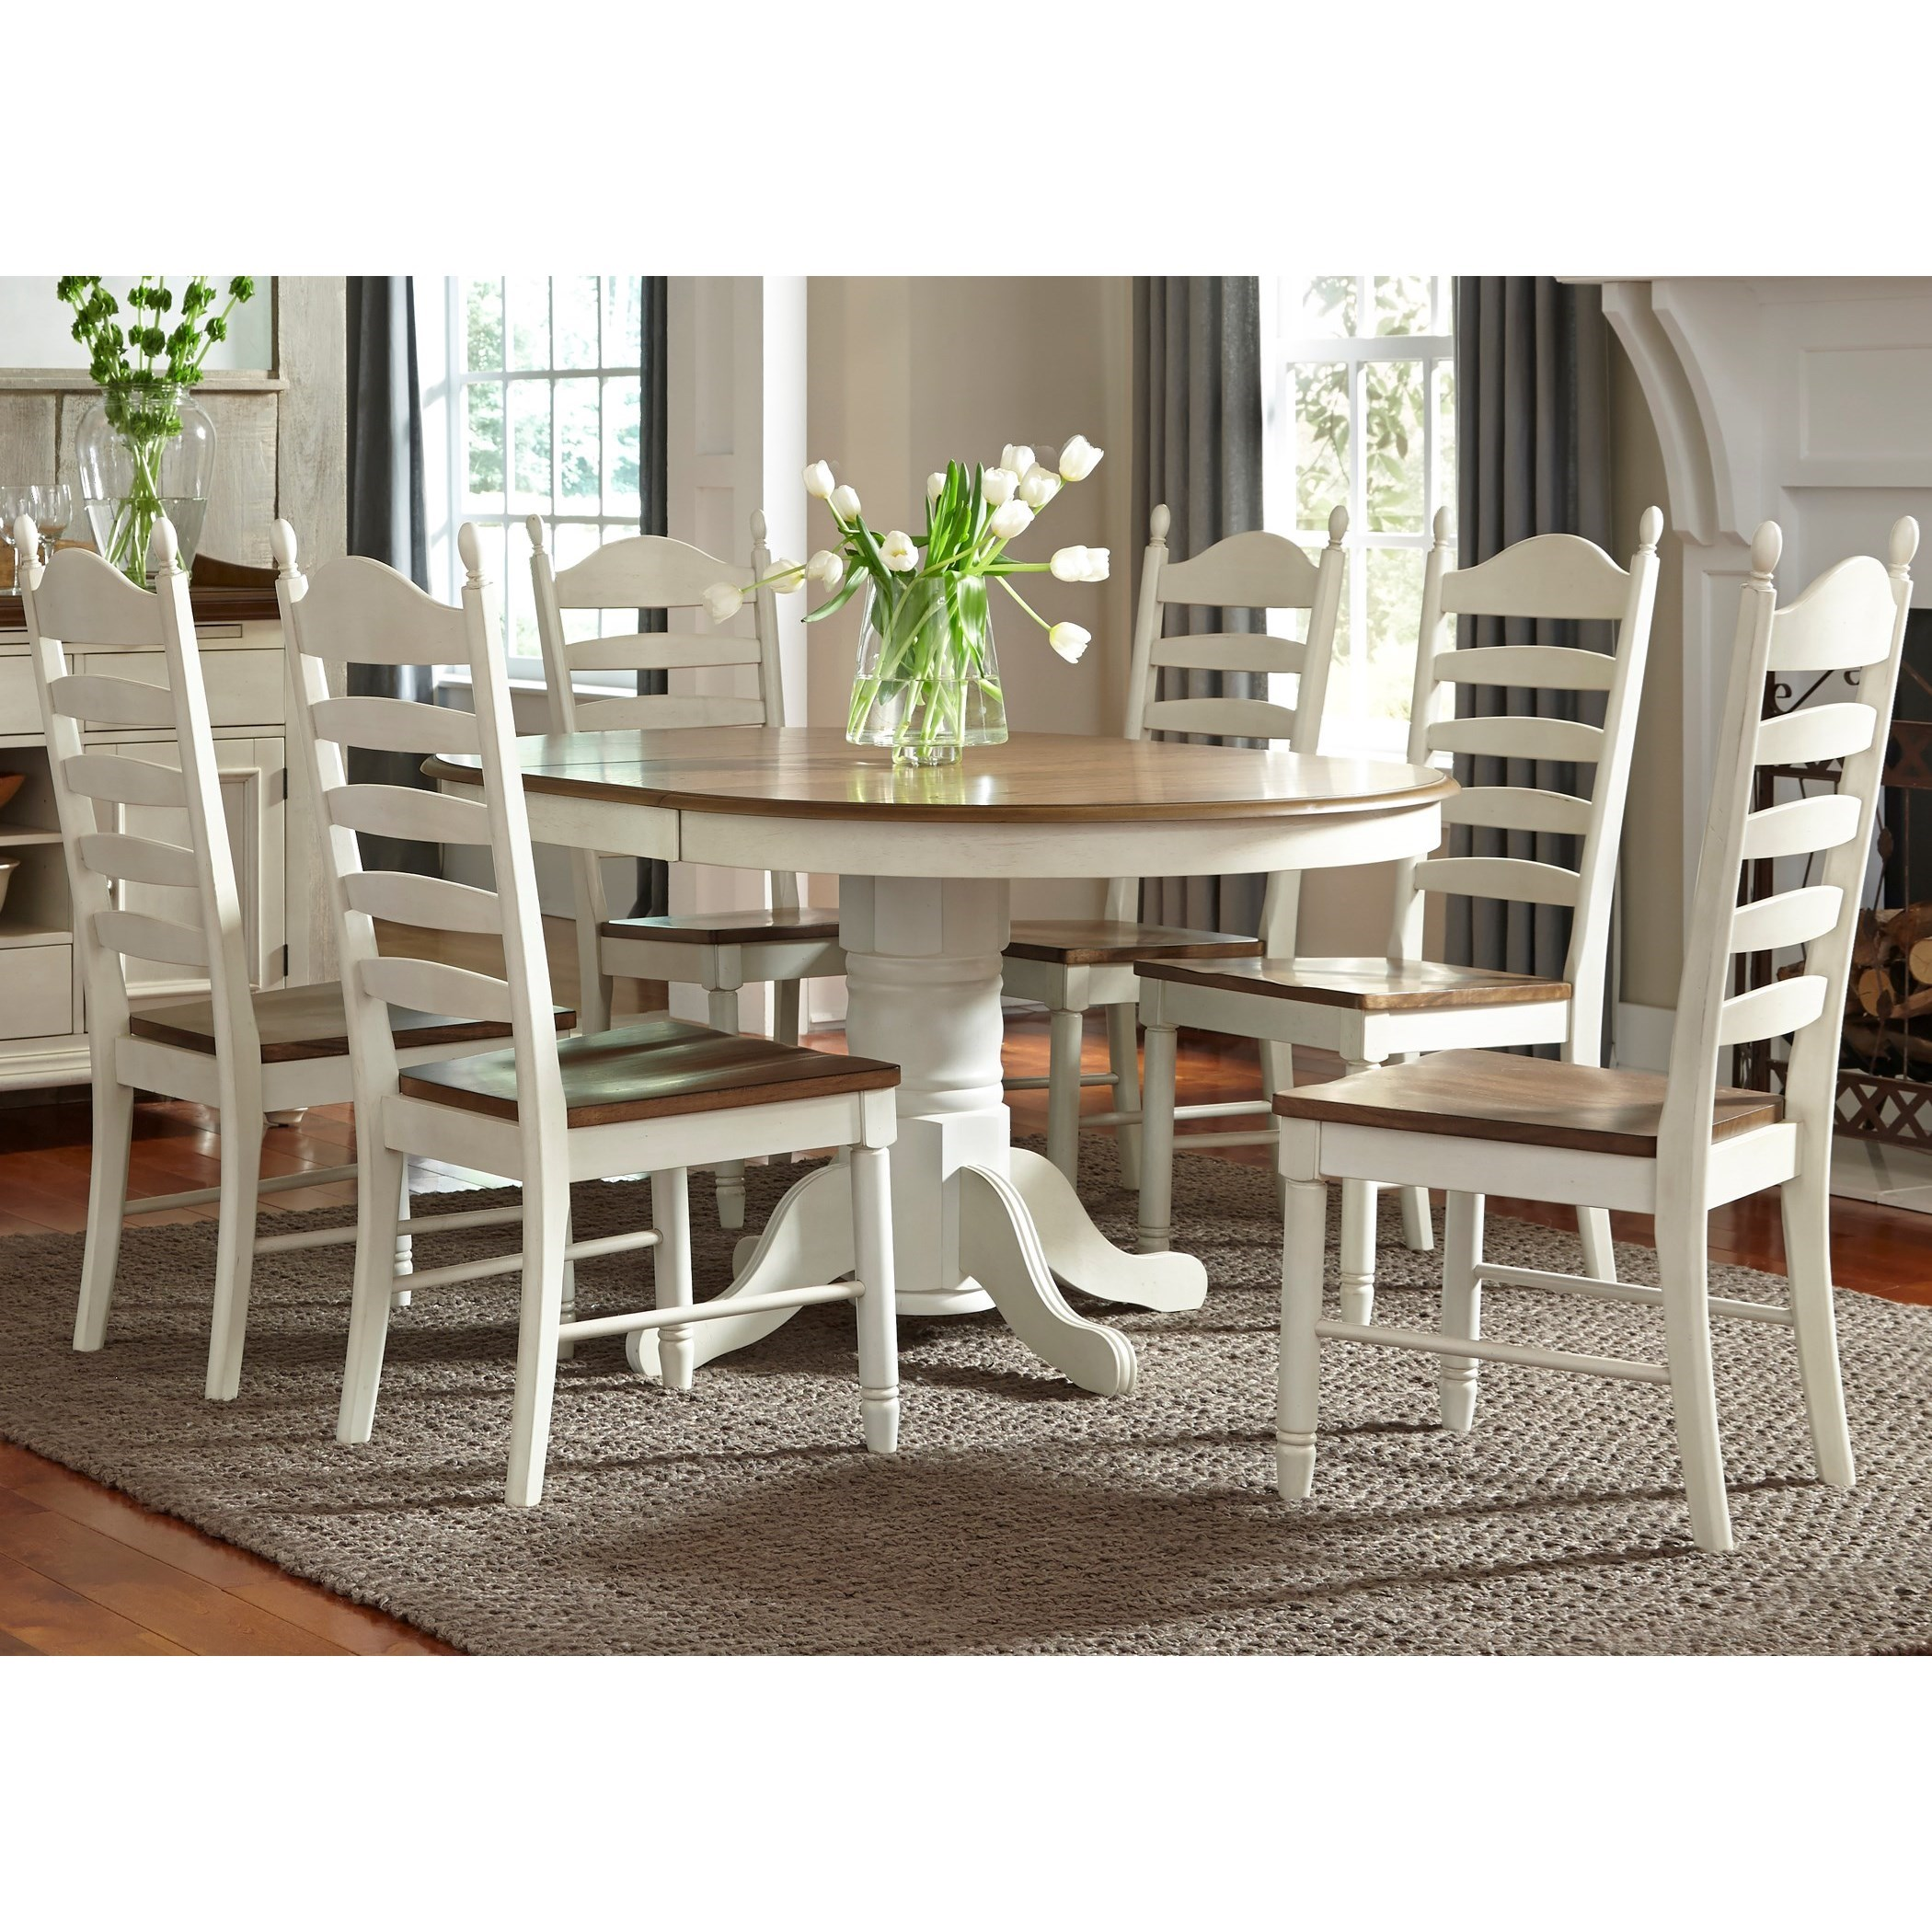 Springfield Dining 7 Piece Pedestal Table & Chair Set by Libby at Walker's Furniture